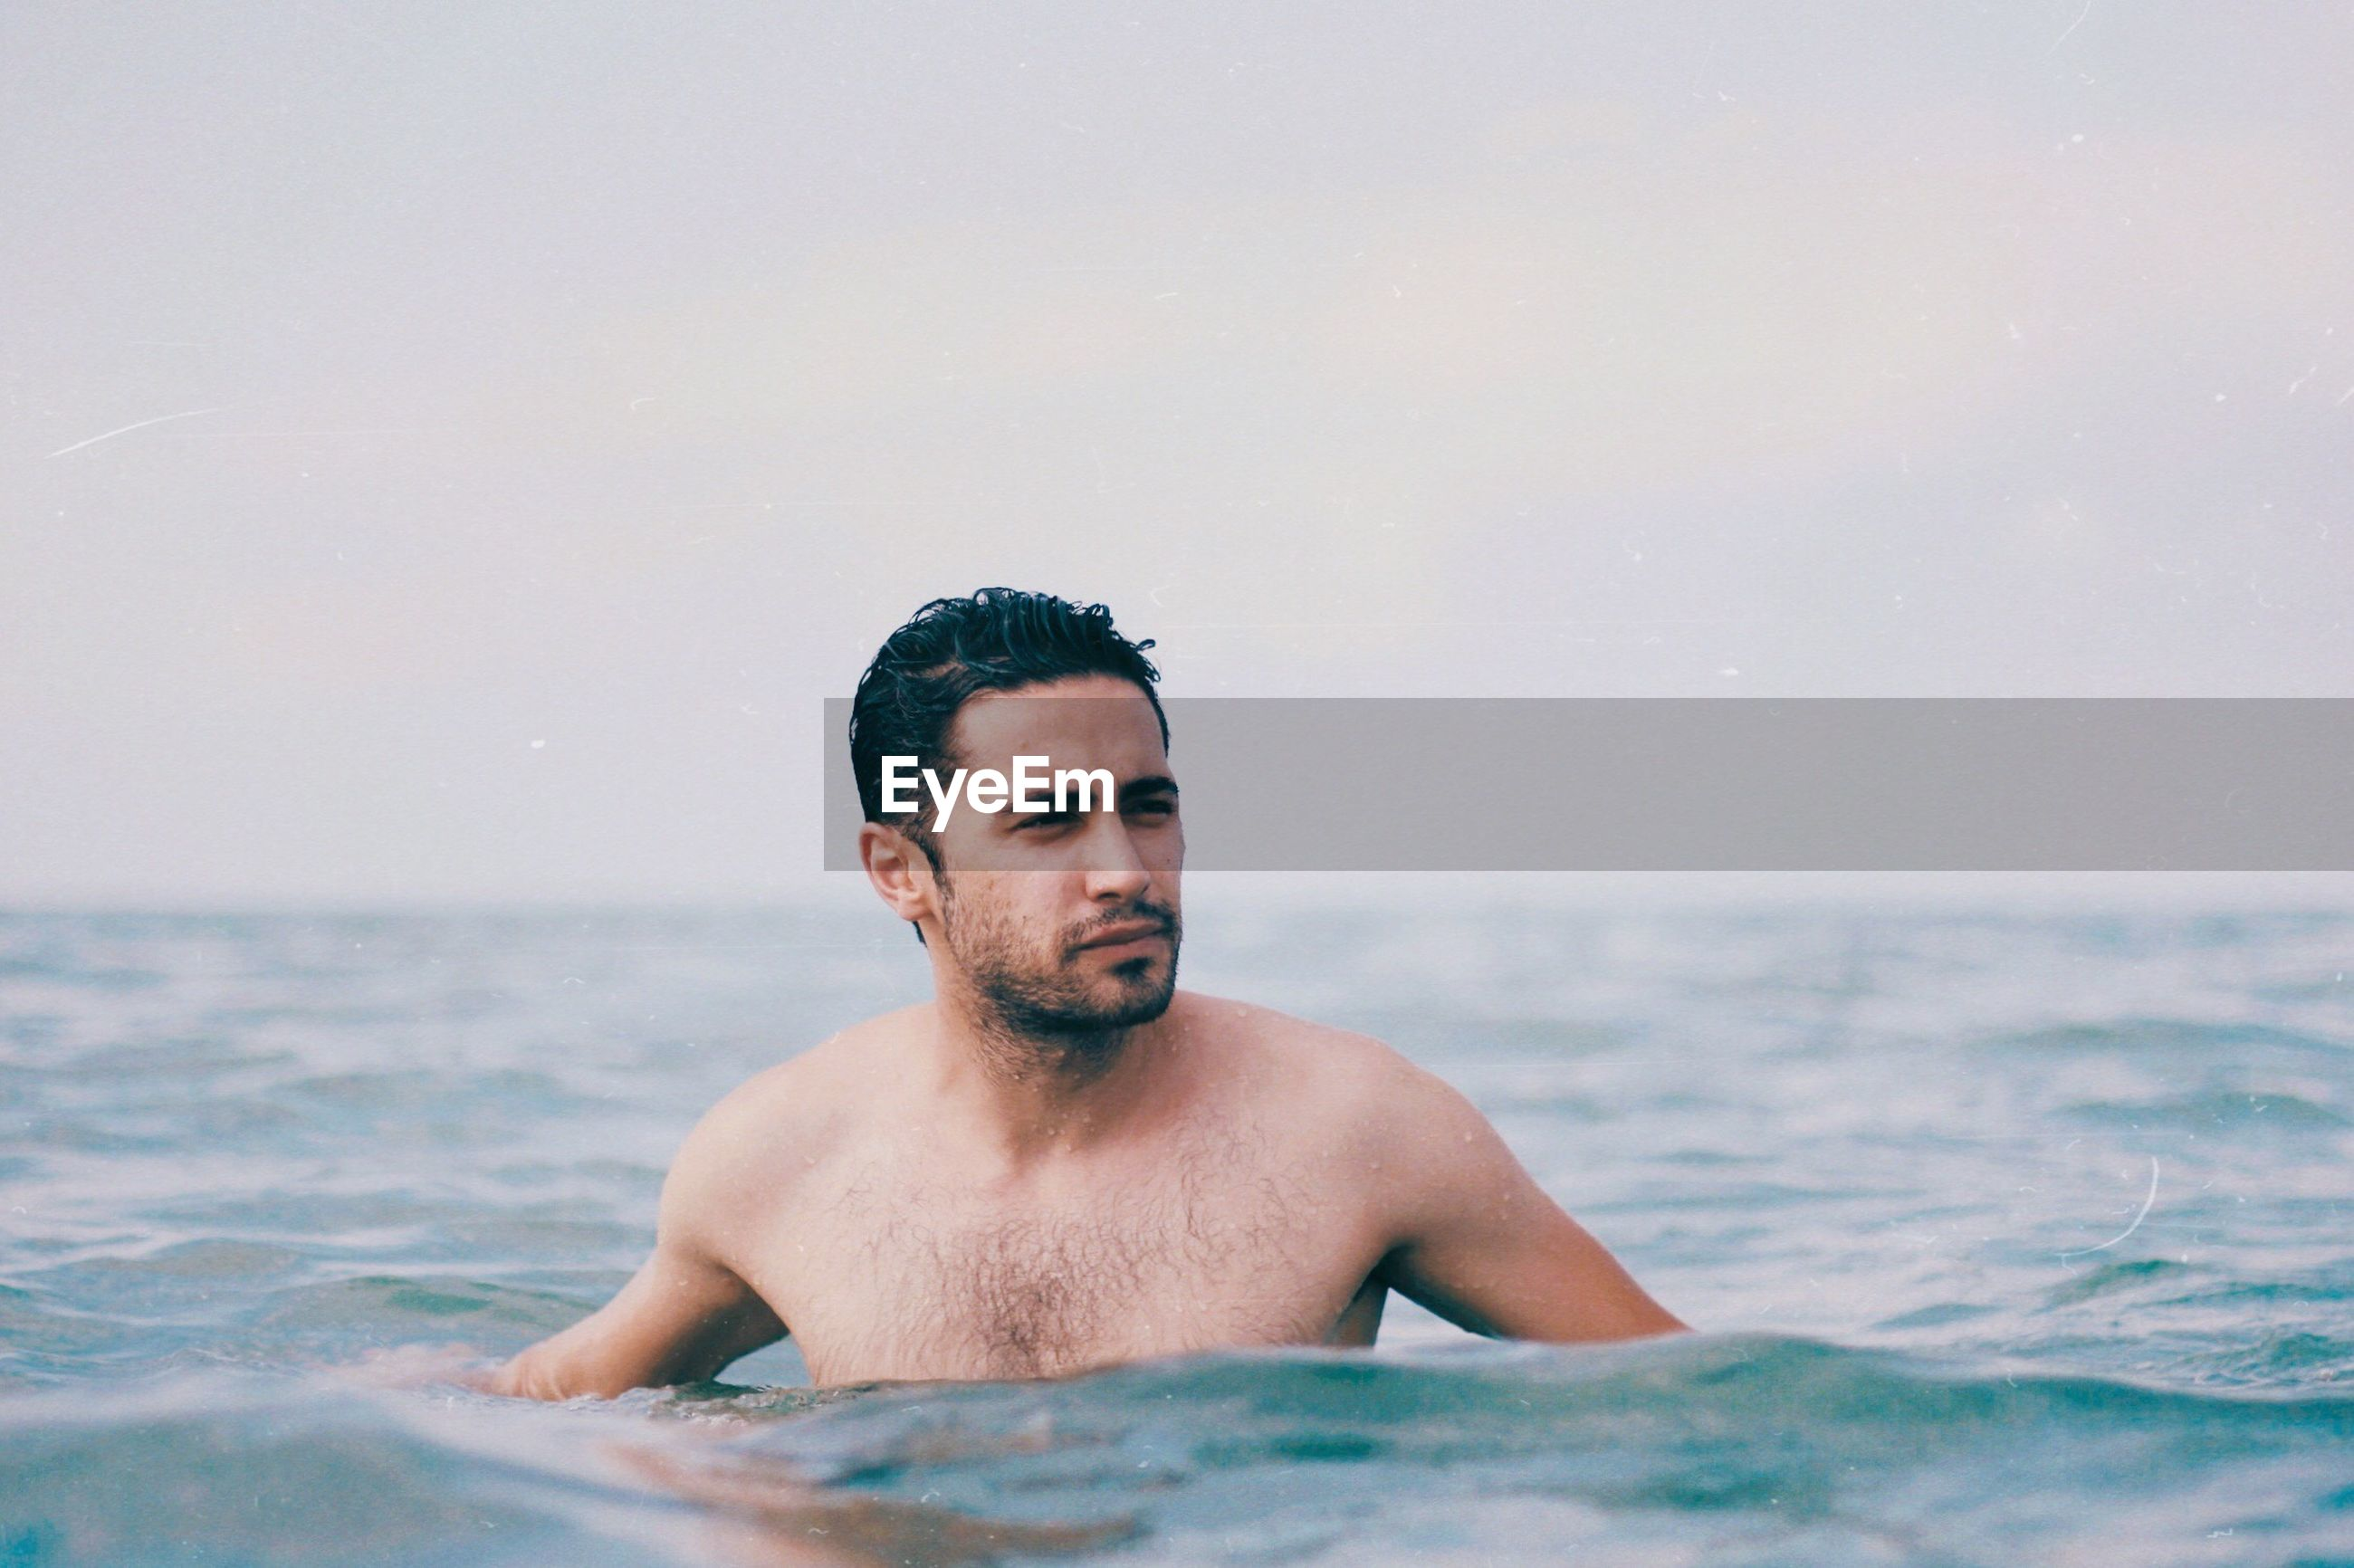 Shirtless young man looking away while swimming in sea against sky